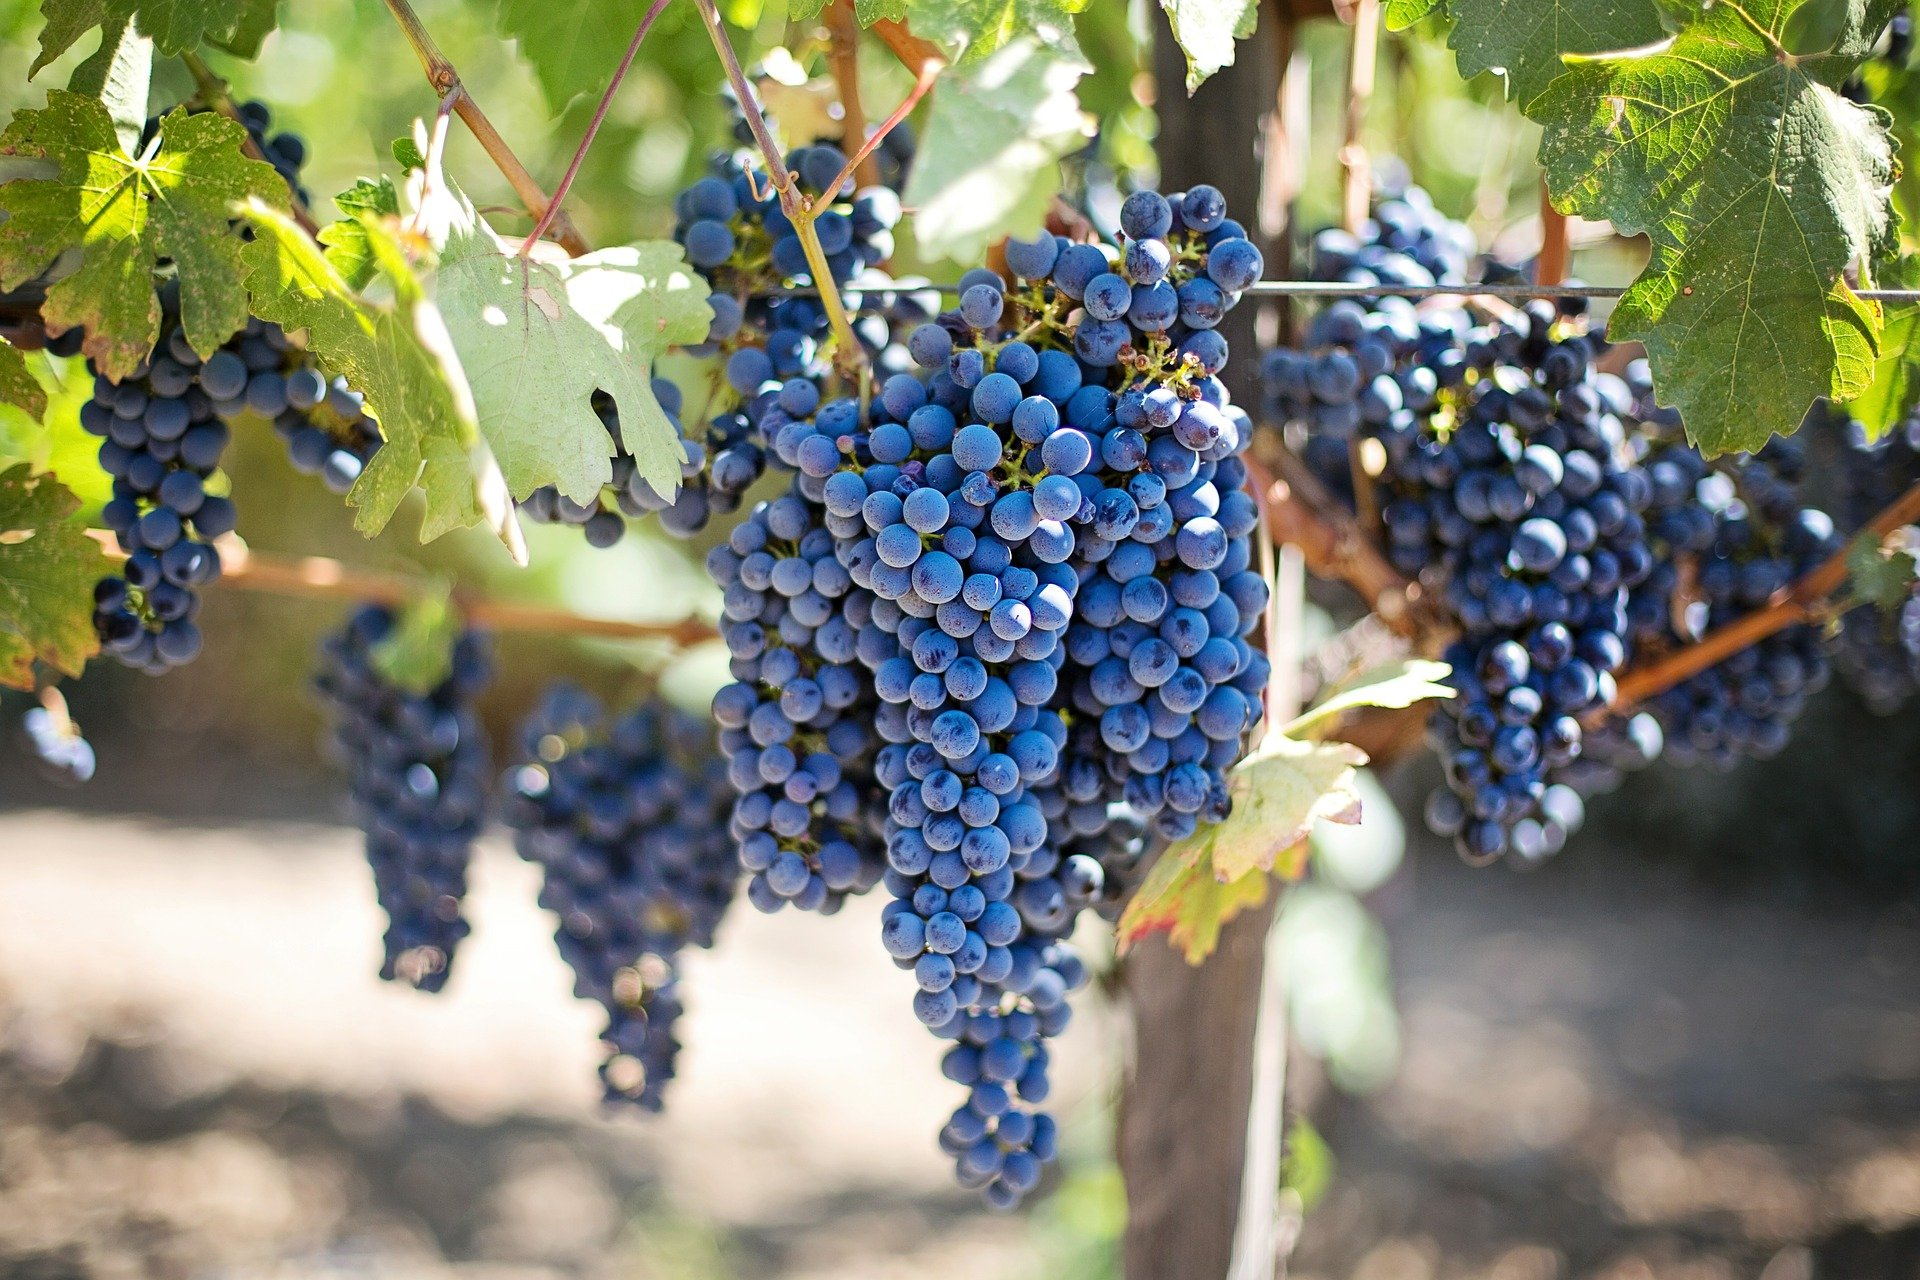 Plant grapevines in your own garden